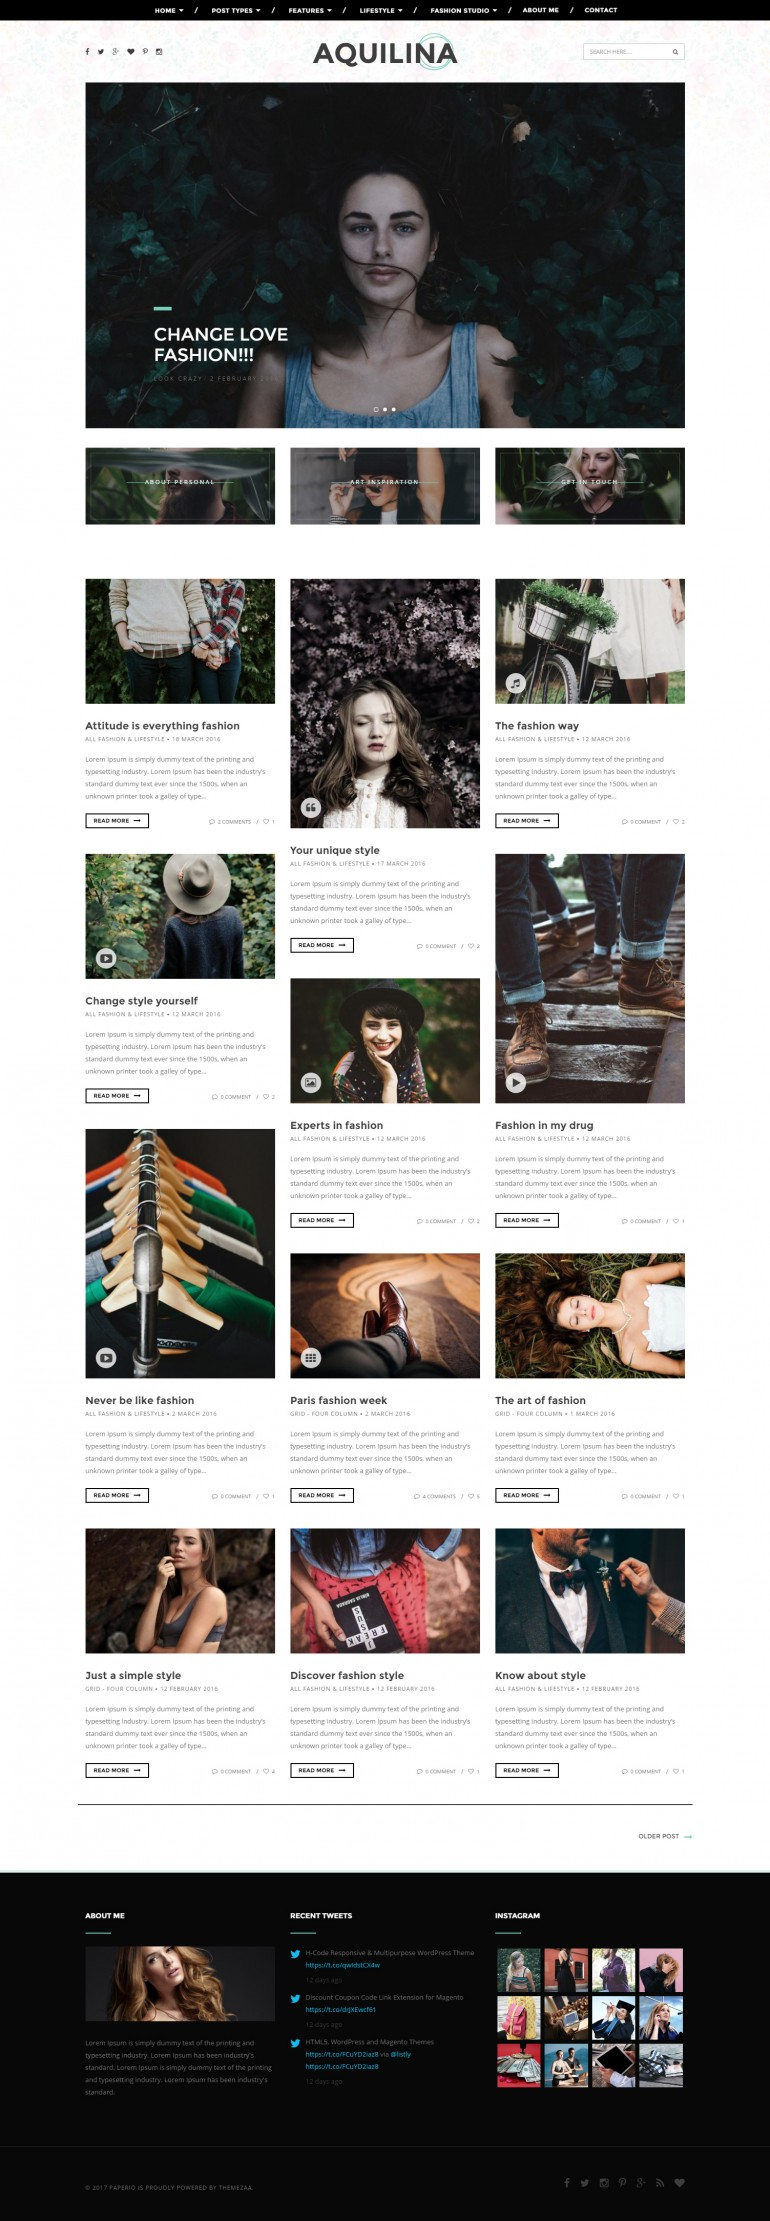 Paperio – Responsive and Multipurpose WordPress Blog Theme – Aquilina